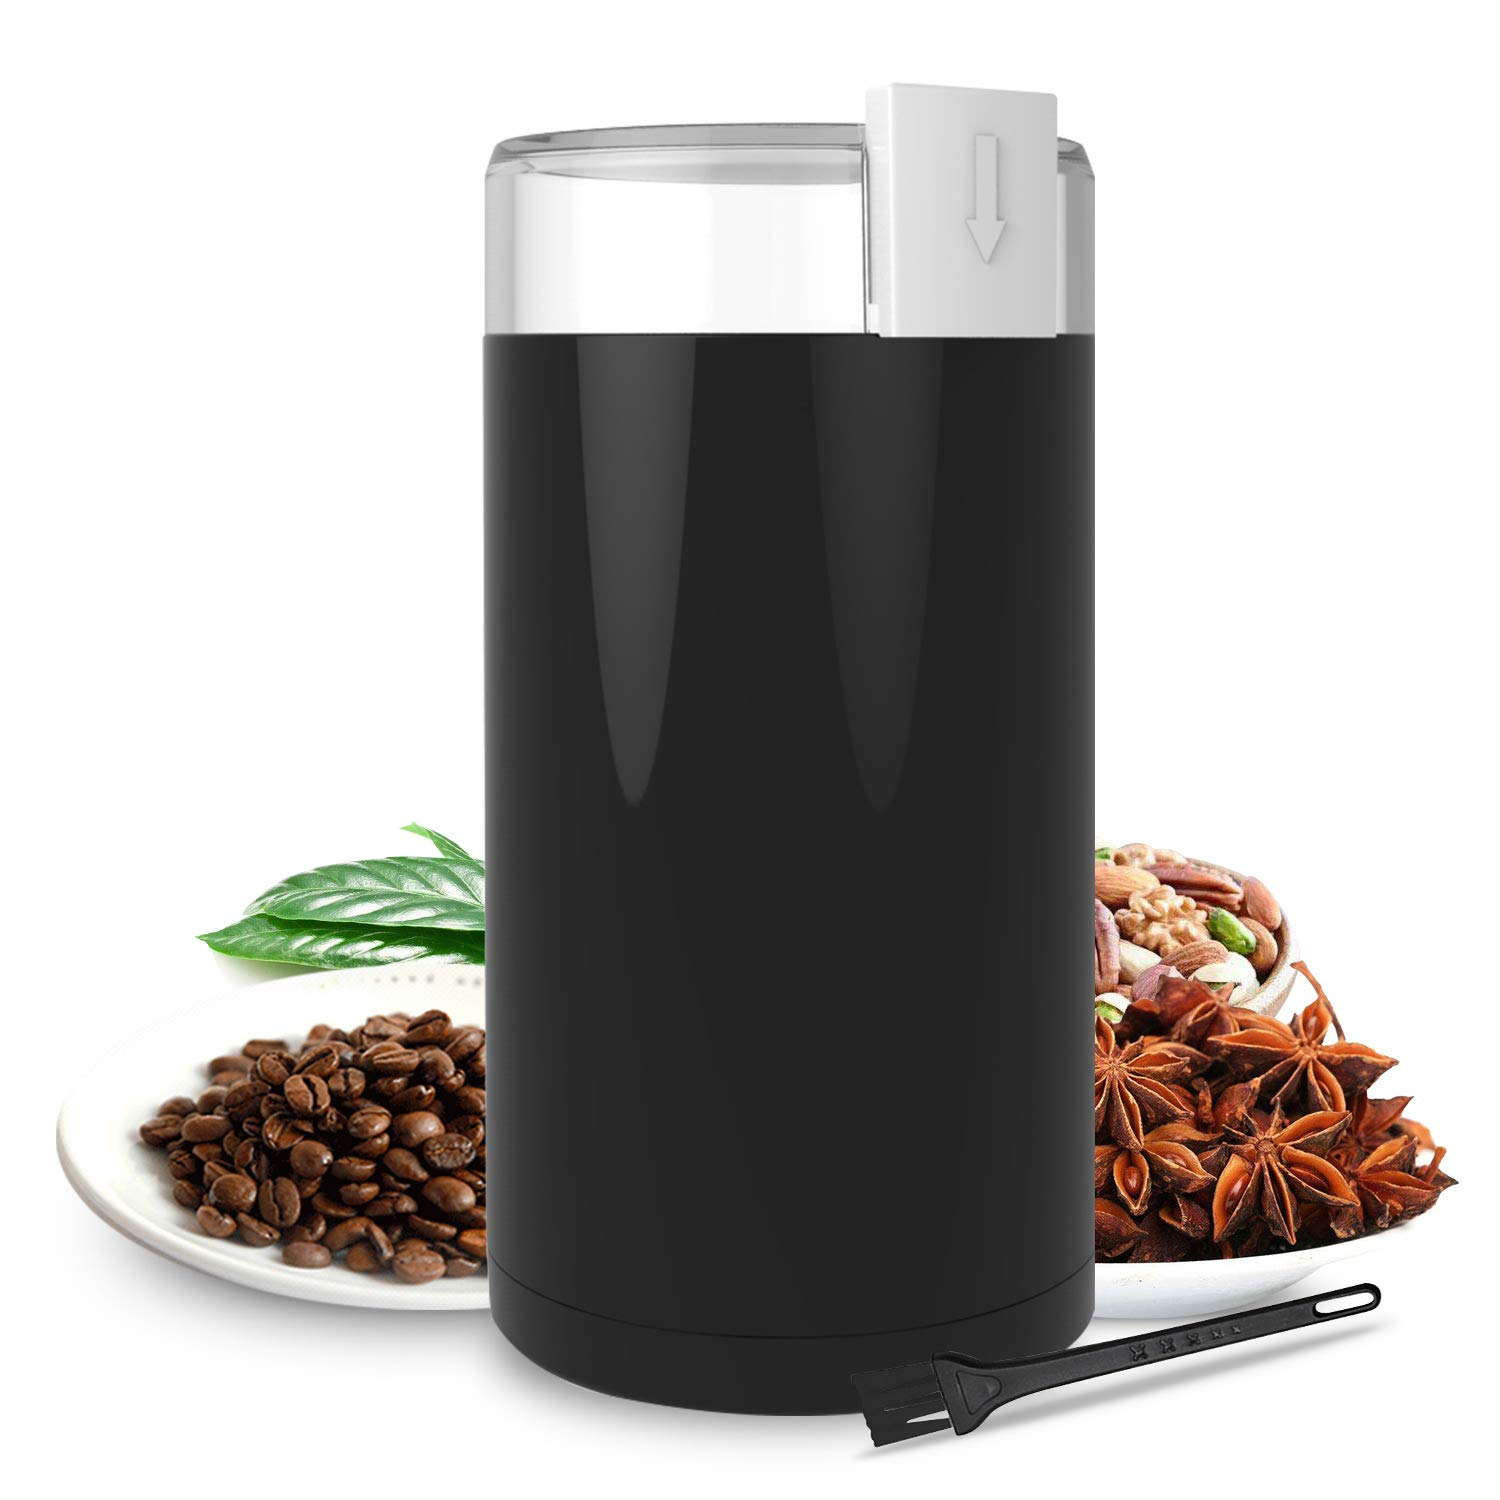 Coffee Grinder, Chytac Electric Coffee Mill 150W with Large Grinding Capacity for Peppers, Beans, Spices, Herbs, Nuts, Grains and More, Stainless Steel Blades, Black by Chytac